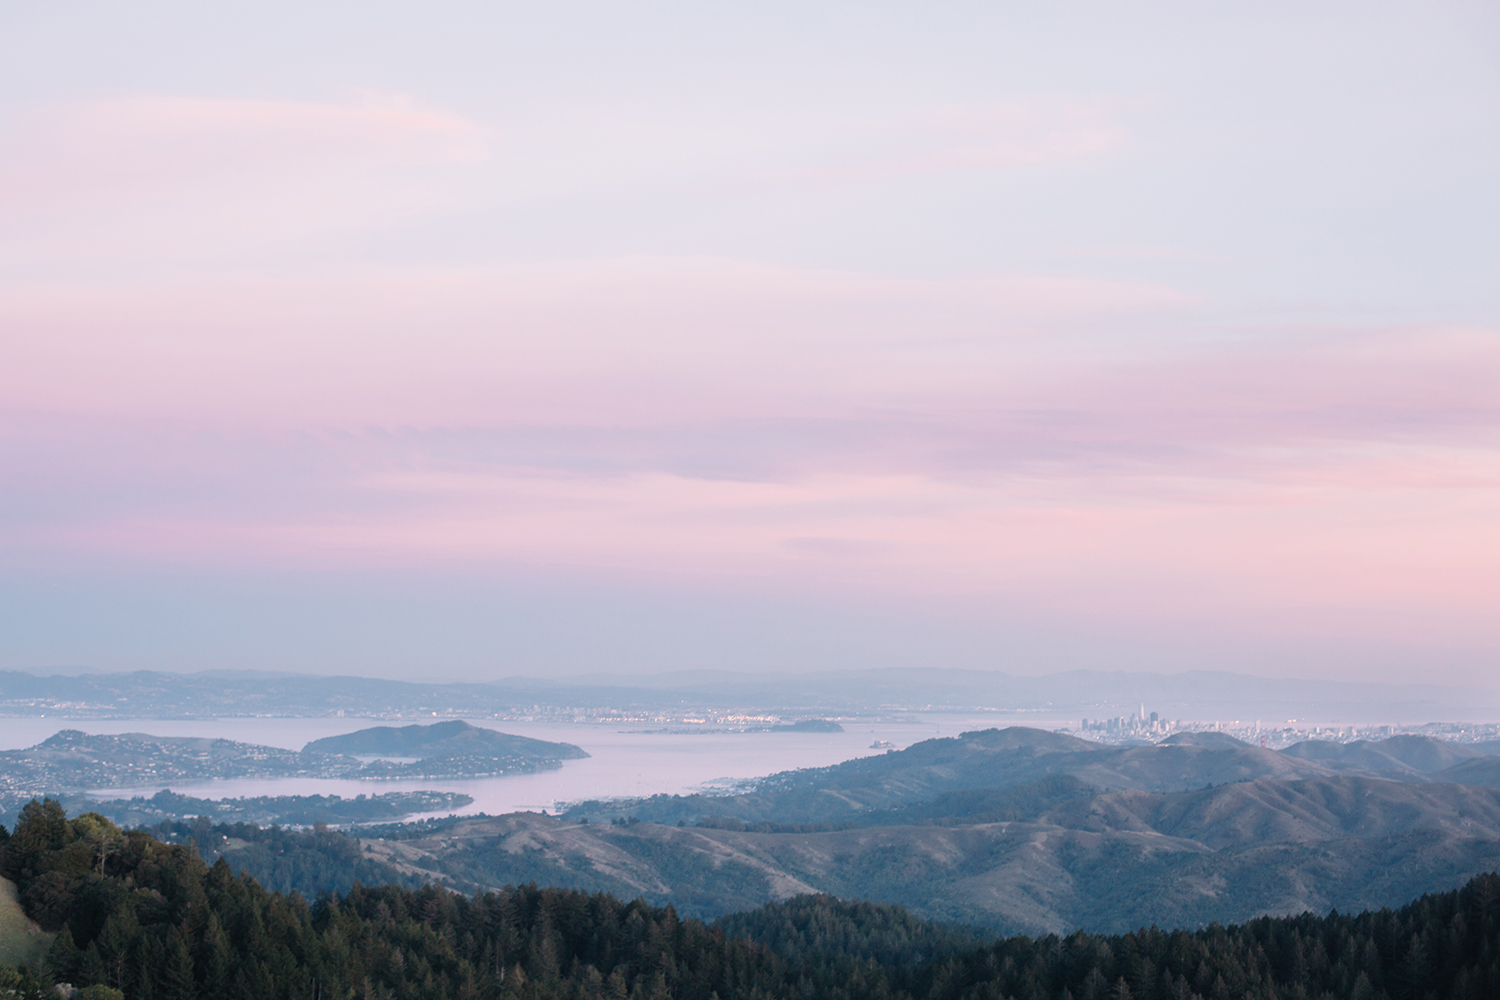 Skyline view of the San Francisco Bay Area from Mount Tamalpais in Marin, California.